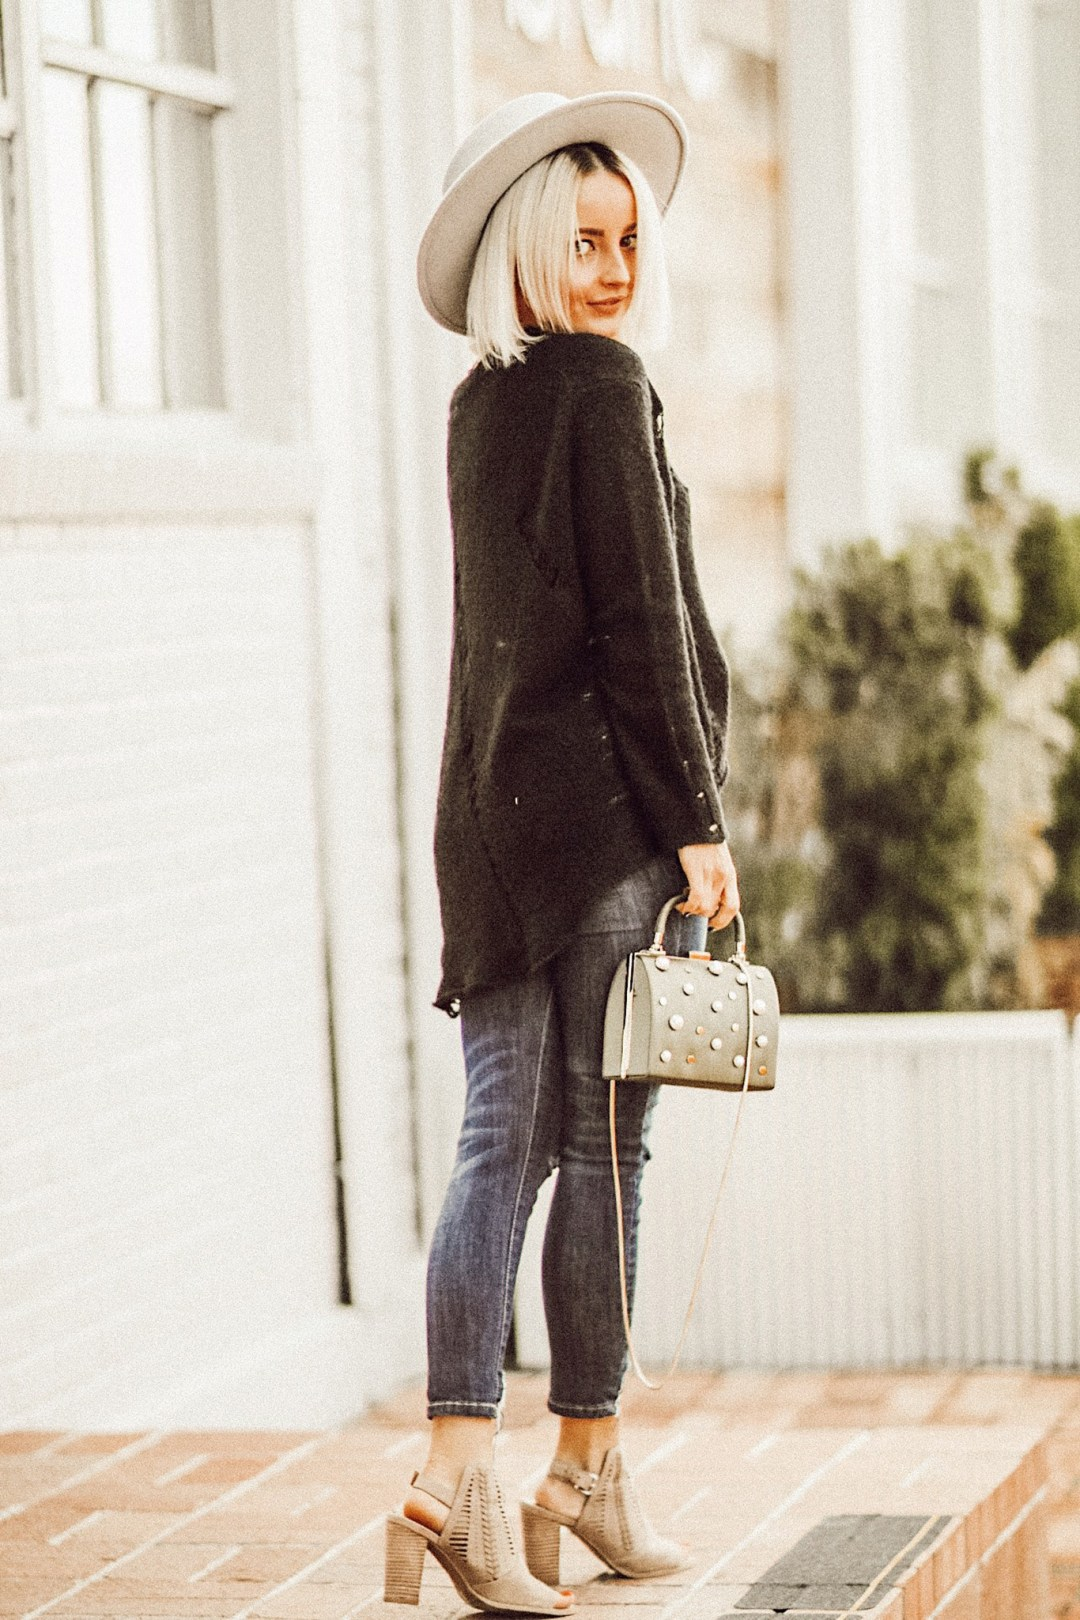 Alena Gidenko of modaprints.com shares tips on how to style booties for a girls night out with Famous Footwear